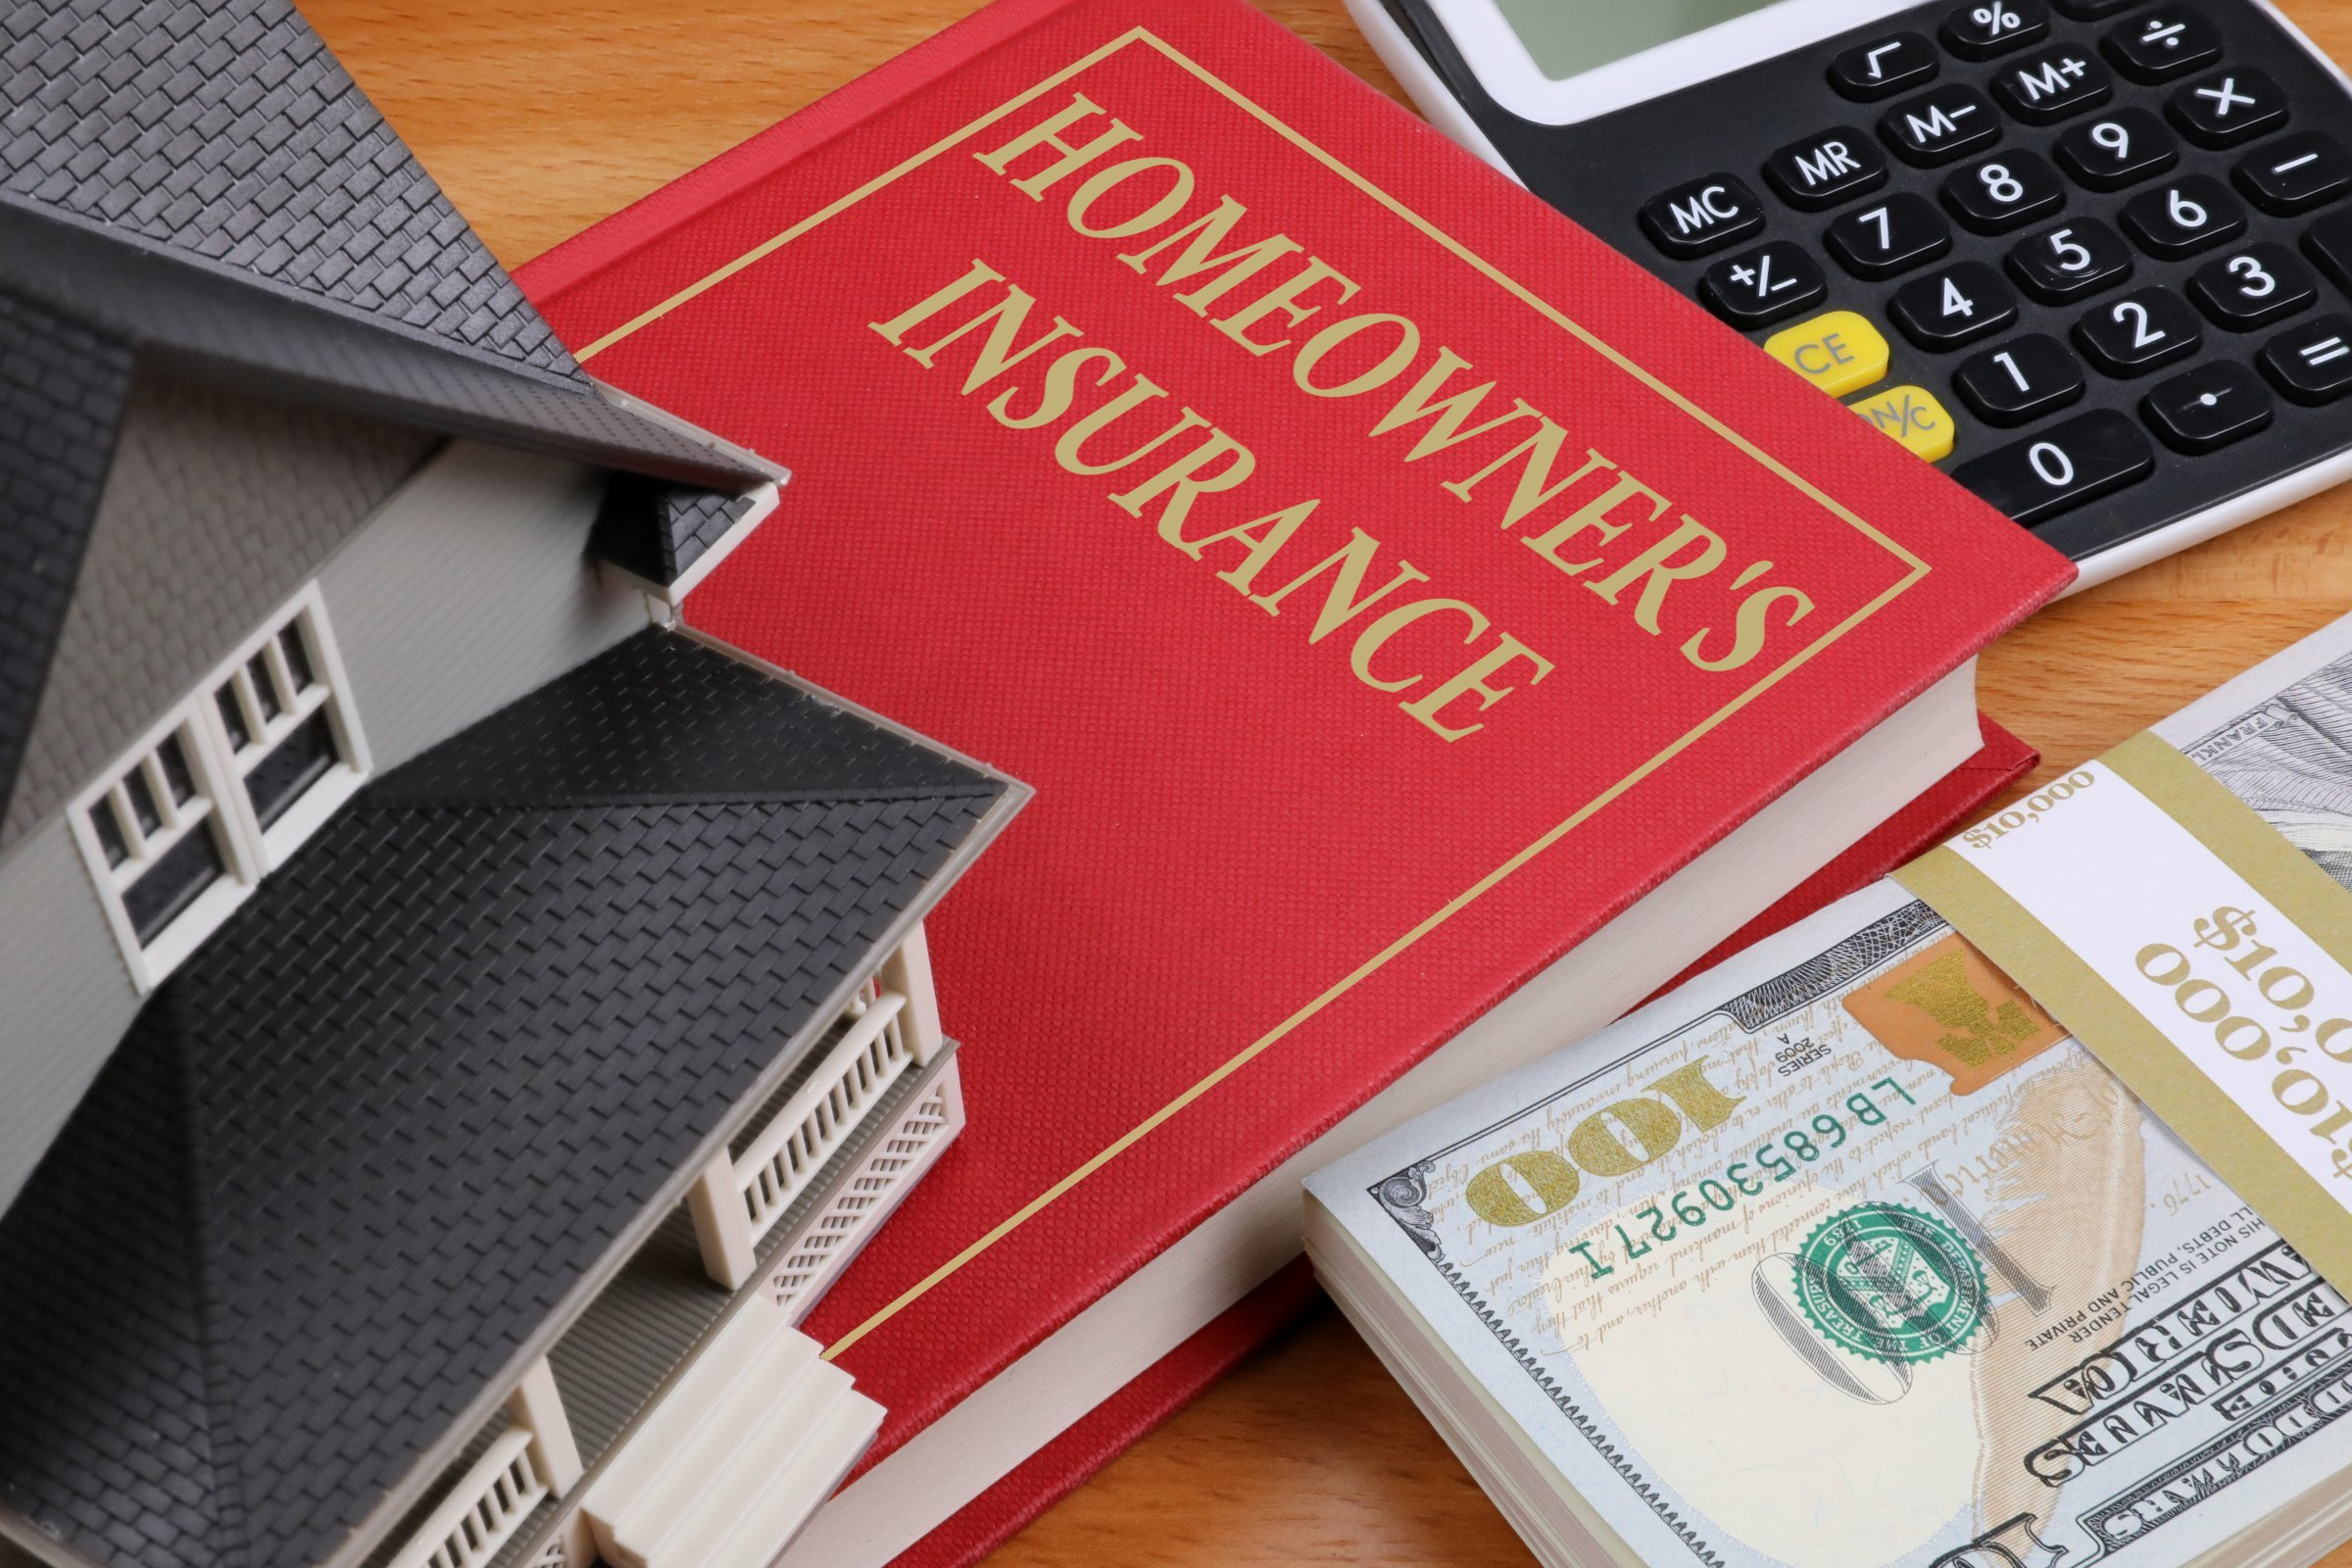 image - Homeowners' Insurance for Condo Complex - Things to Consider